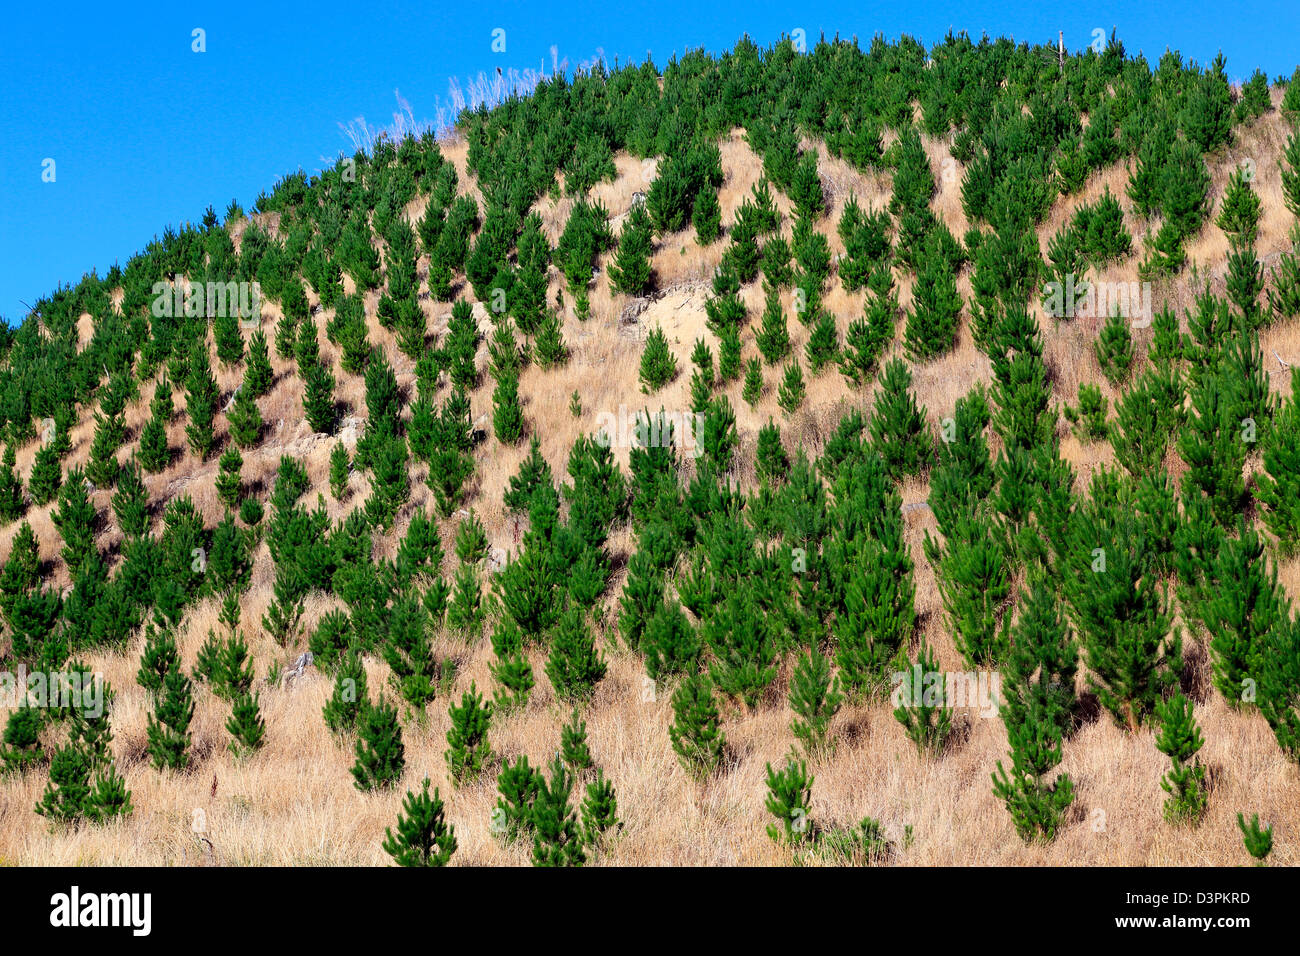 Young pine trees growing in forestry block - Stock Image